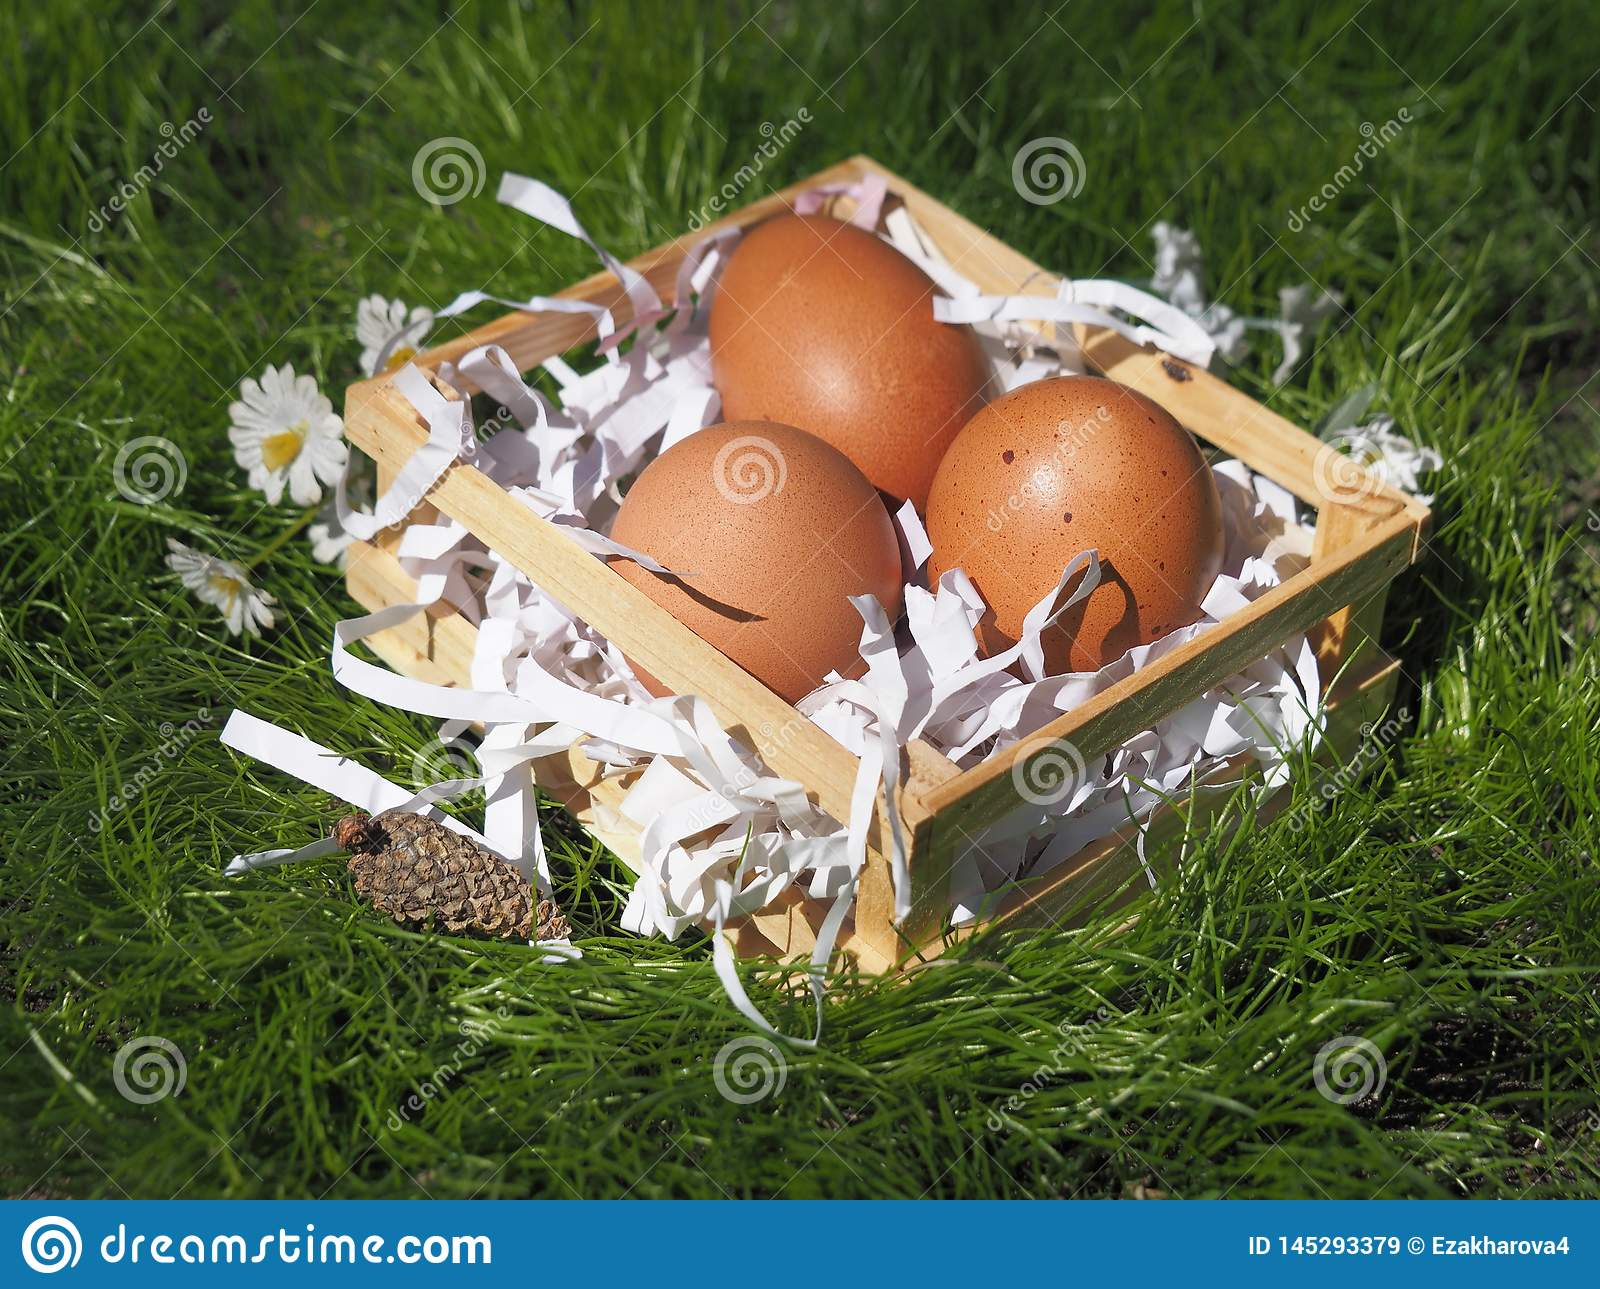 Easter eggs in a basket on the grass